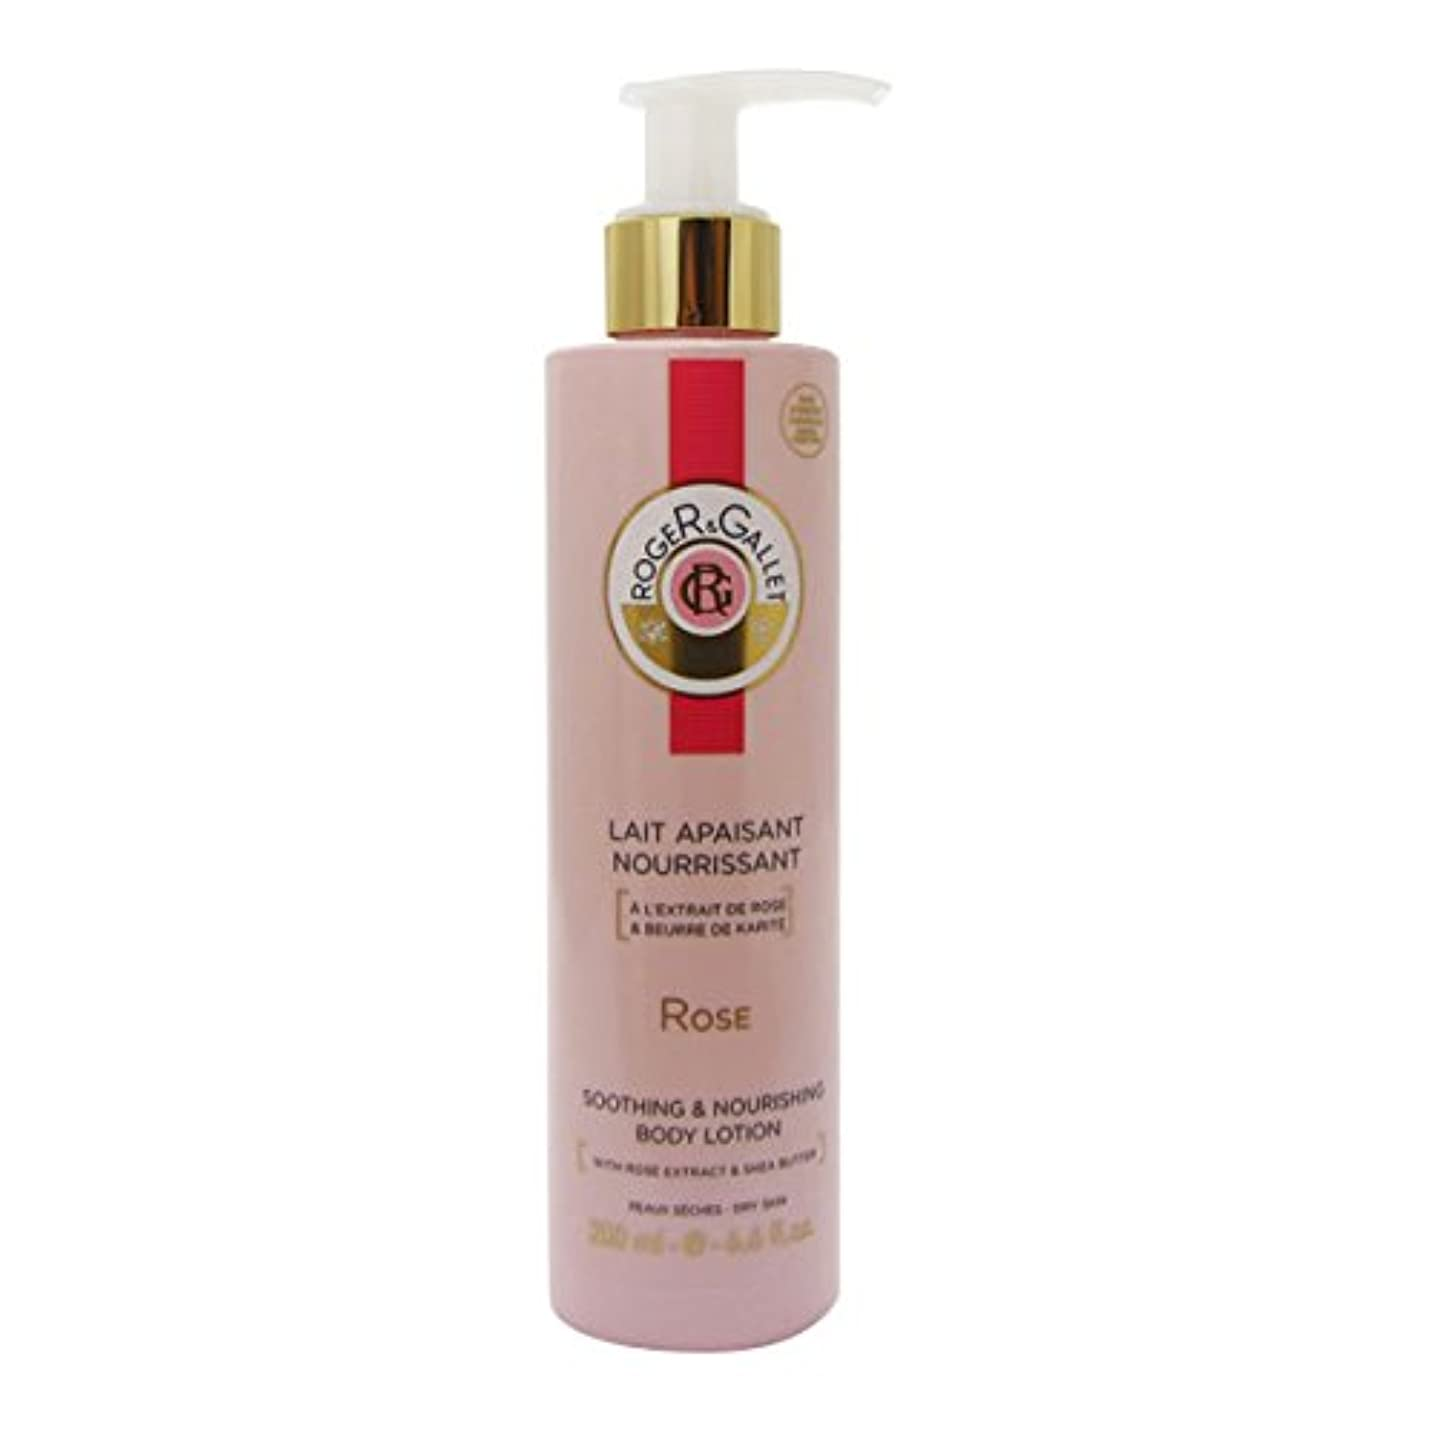 ジャケット苦情文句トラフRoger Gallet Rose Soothing And Nourishing Body Lotion 200ml [並行輸入品]